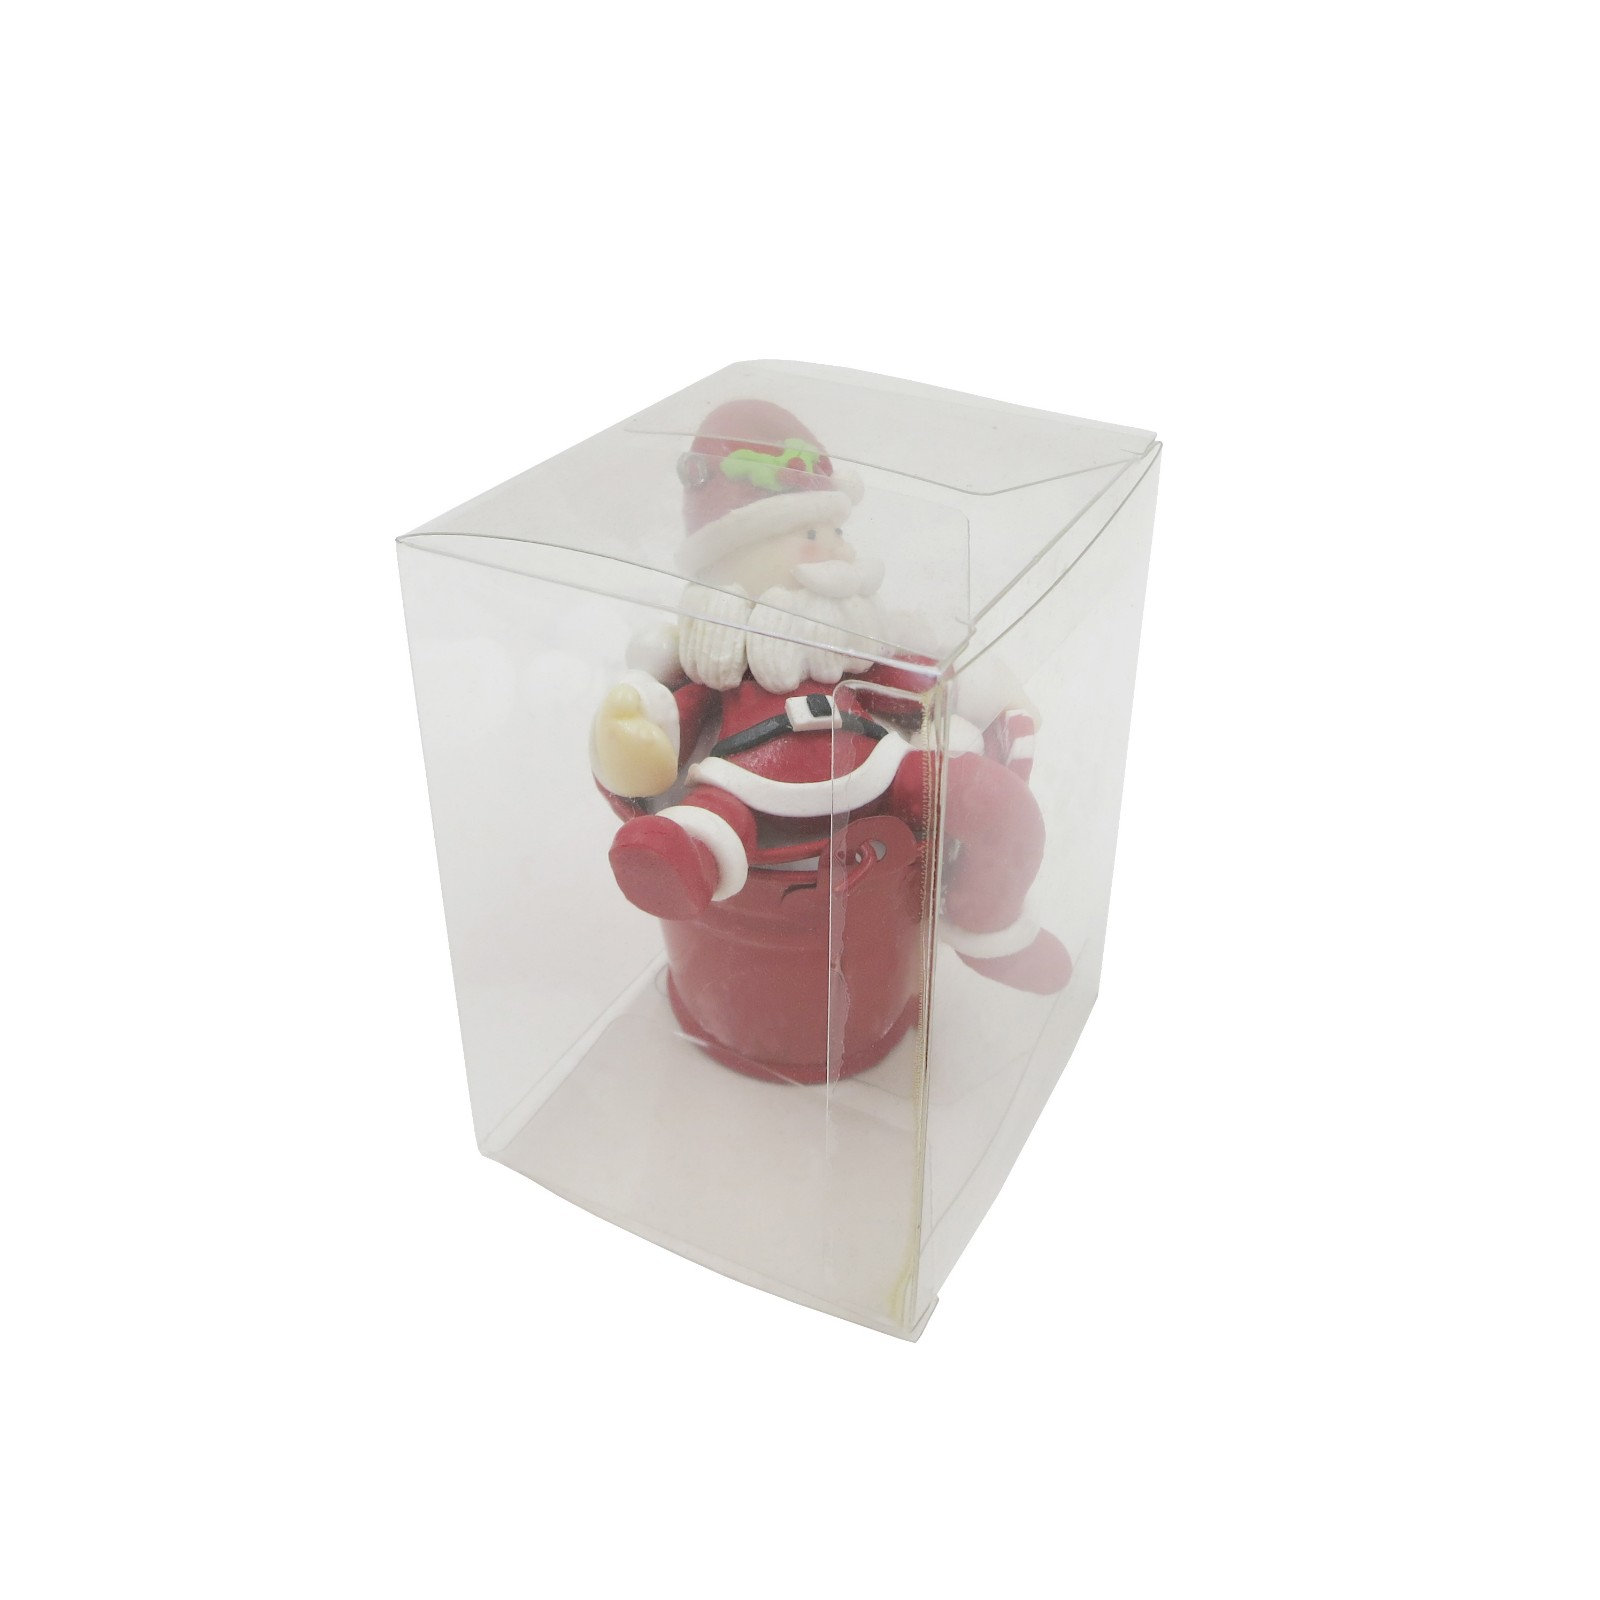 Yijianxing Plastic Products lock plastic box packaging Certified for candy-2